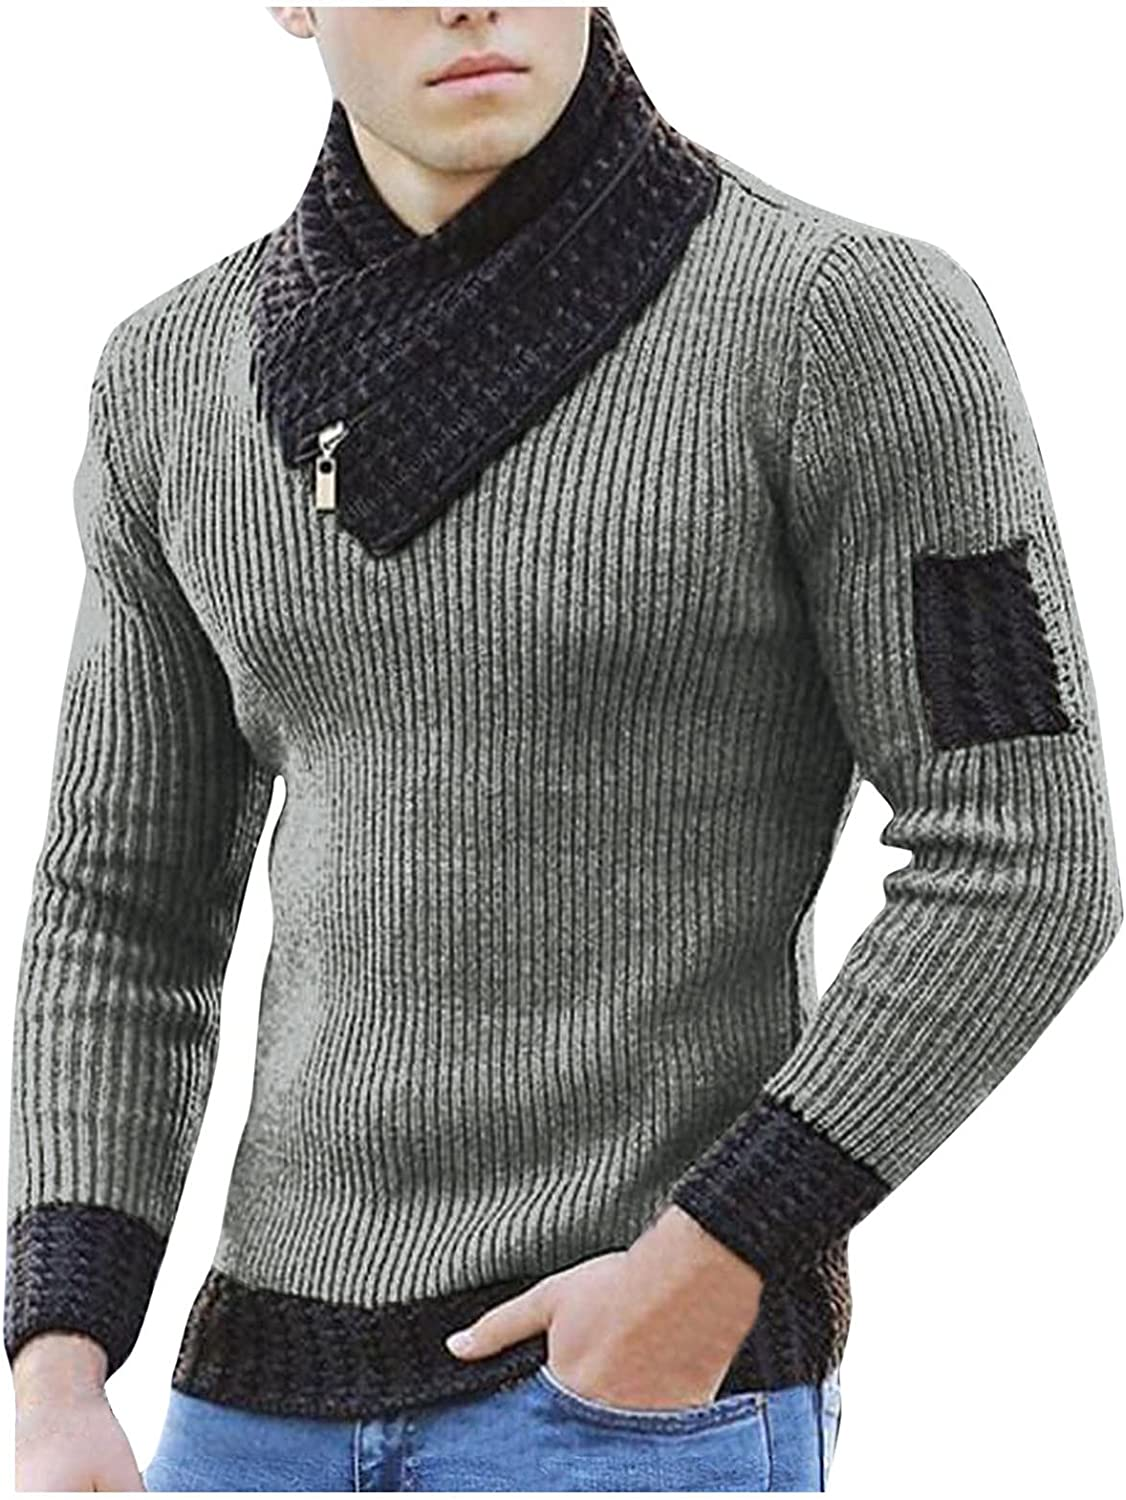 Mens Cowl Neck Pullover Sweaters Rib Knitted Jumper Top Soft Spliced Knitwear Sweater